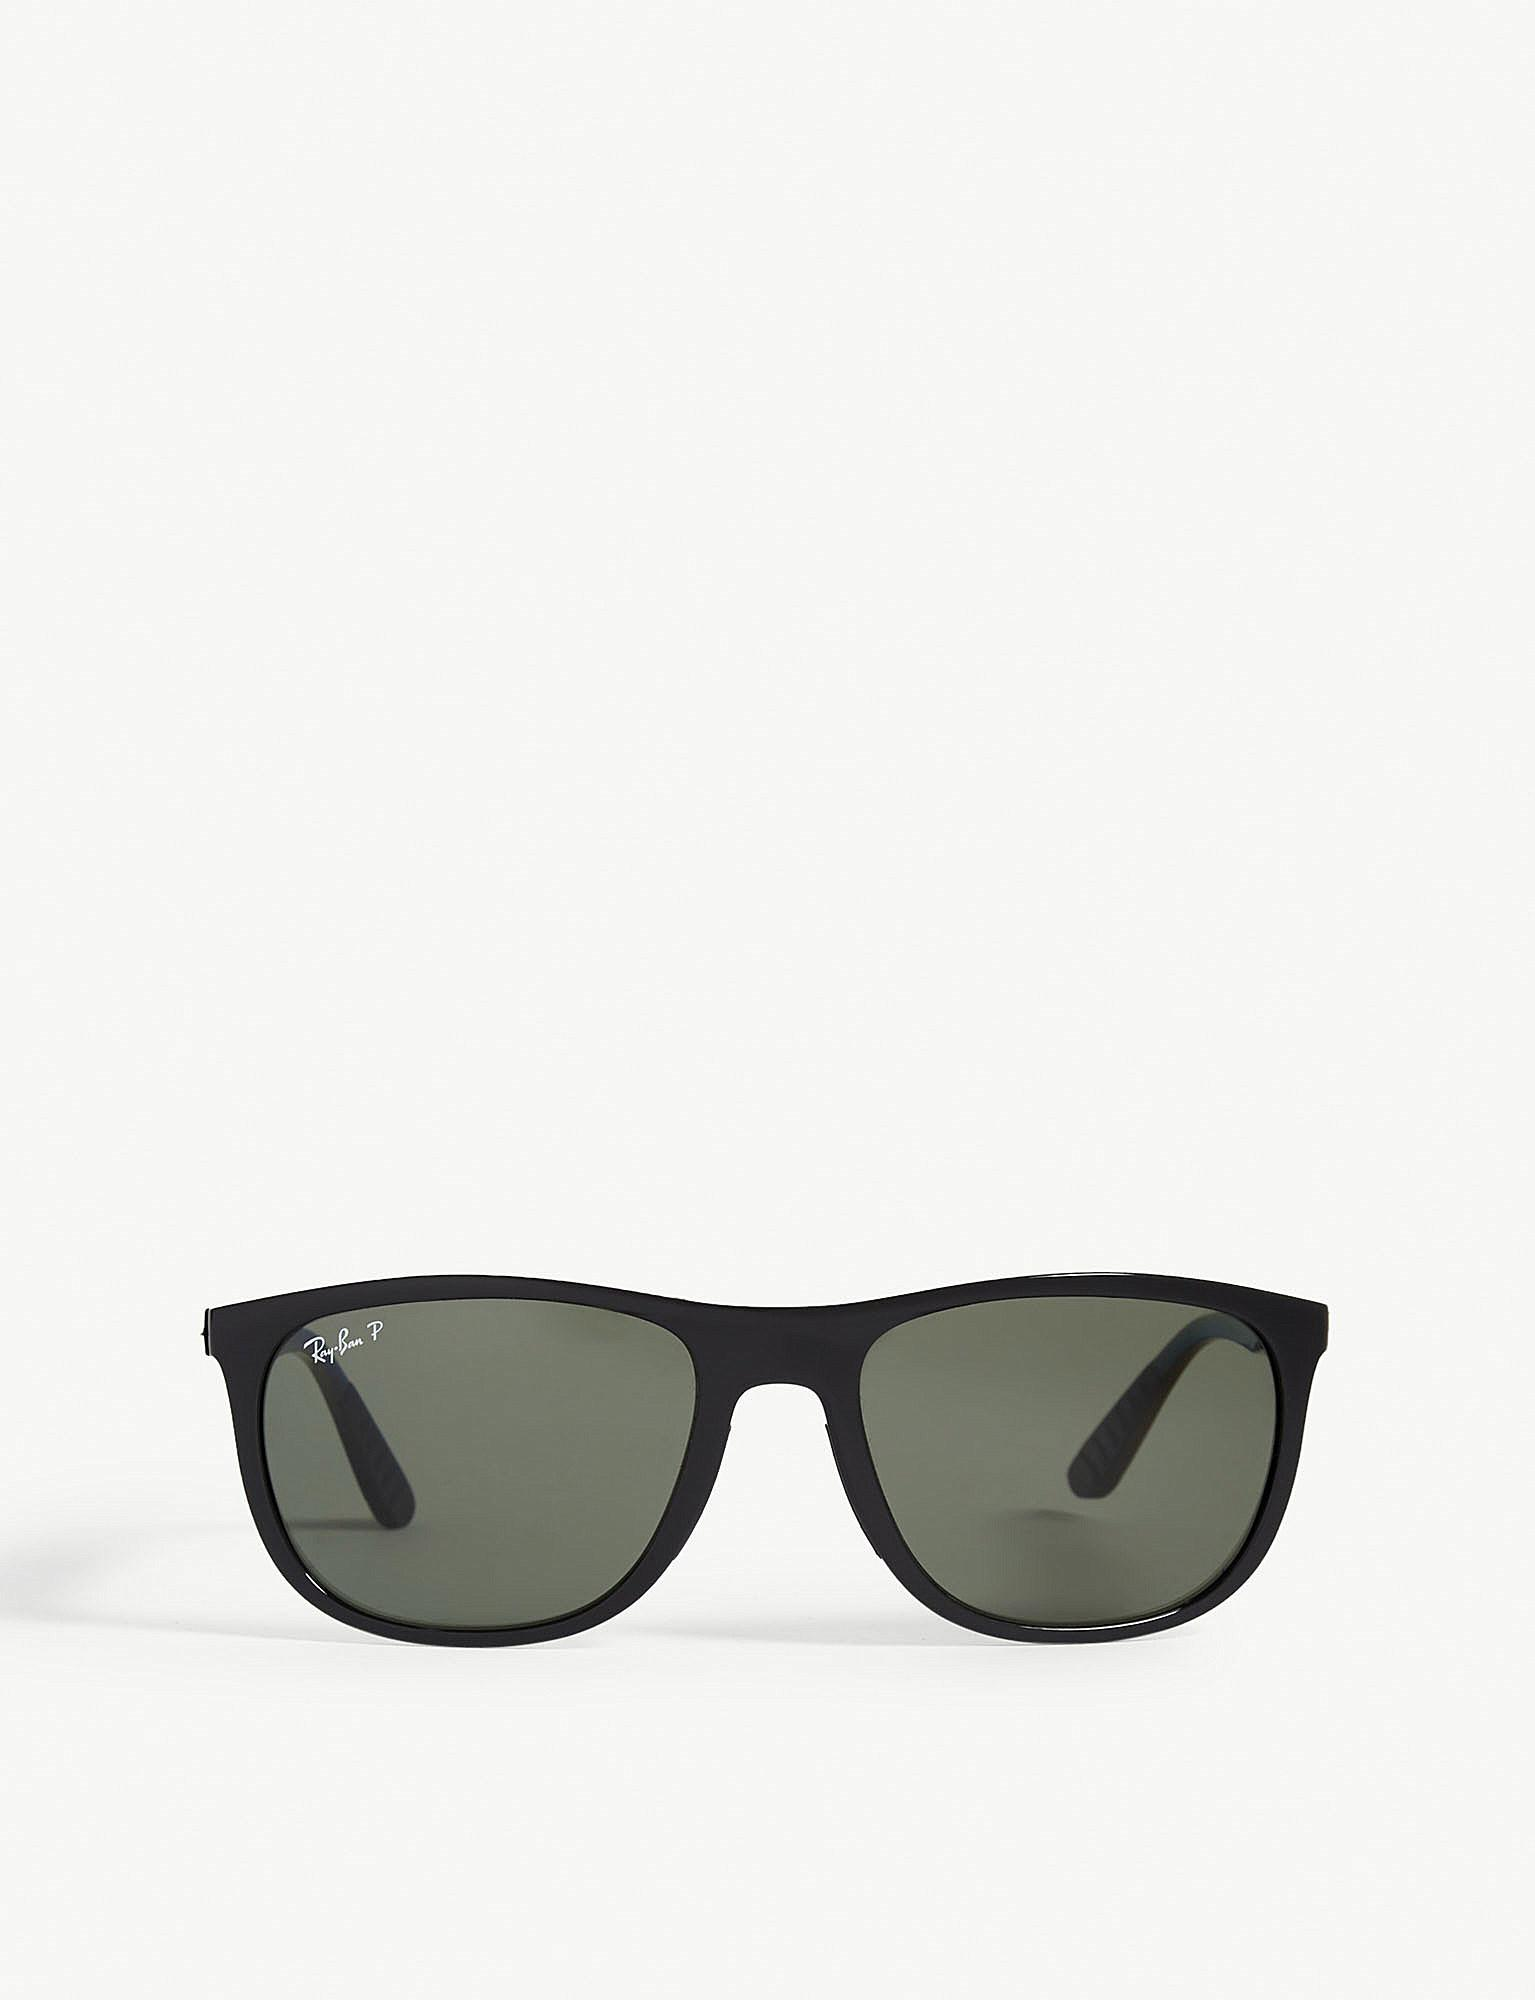 ff7e163a5cc54 Lyst - Ray-Ban Rb3716 Clubmaster Square-frame Sunglasses in Black ...